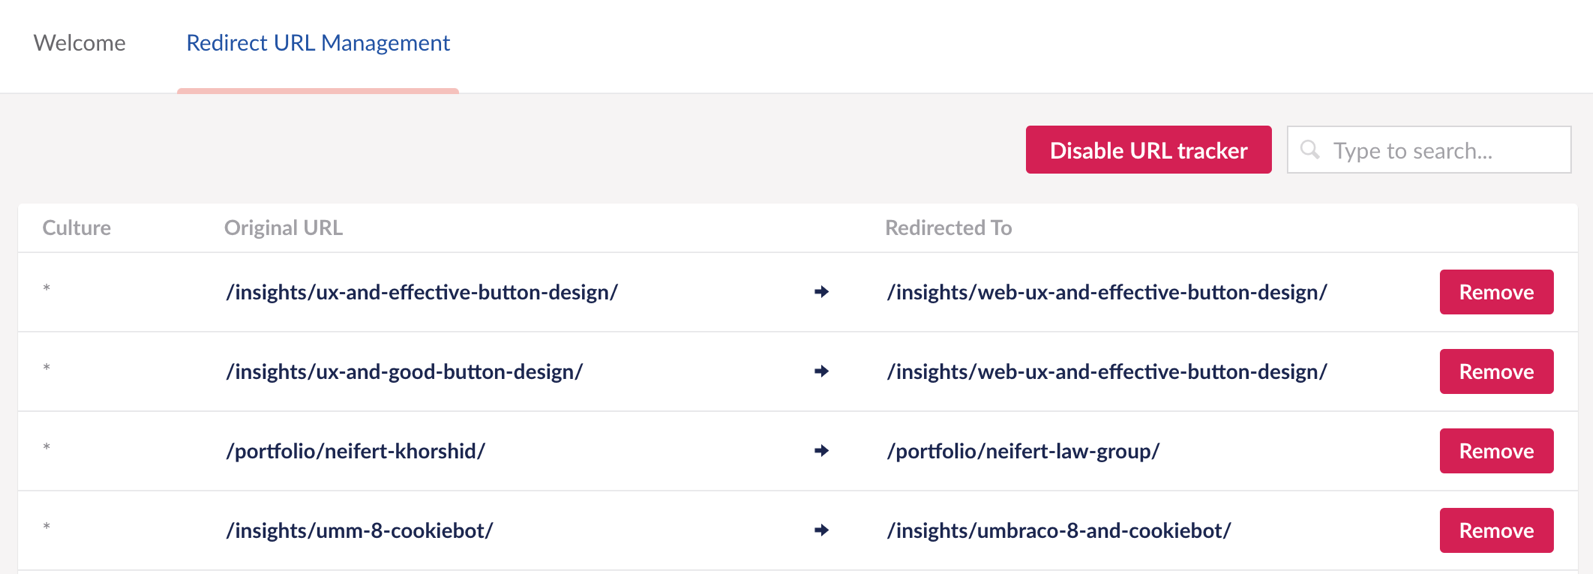 The automatic redirection dashboard shows you all the recent re-directs that Umbraco has managed automatically